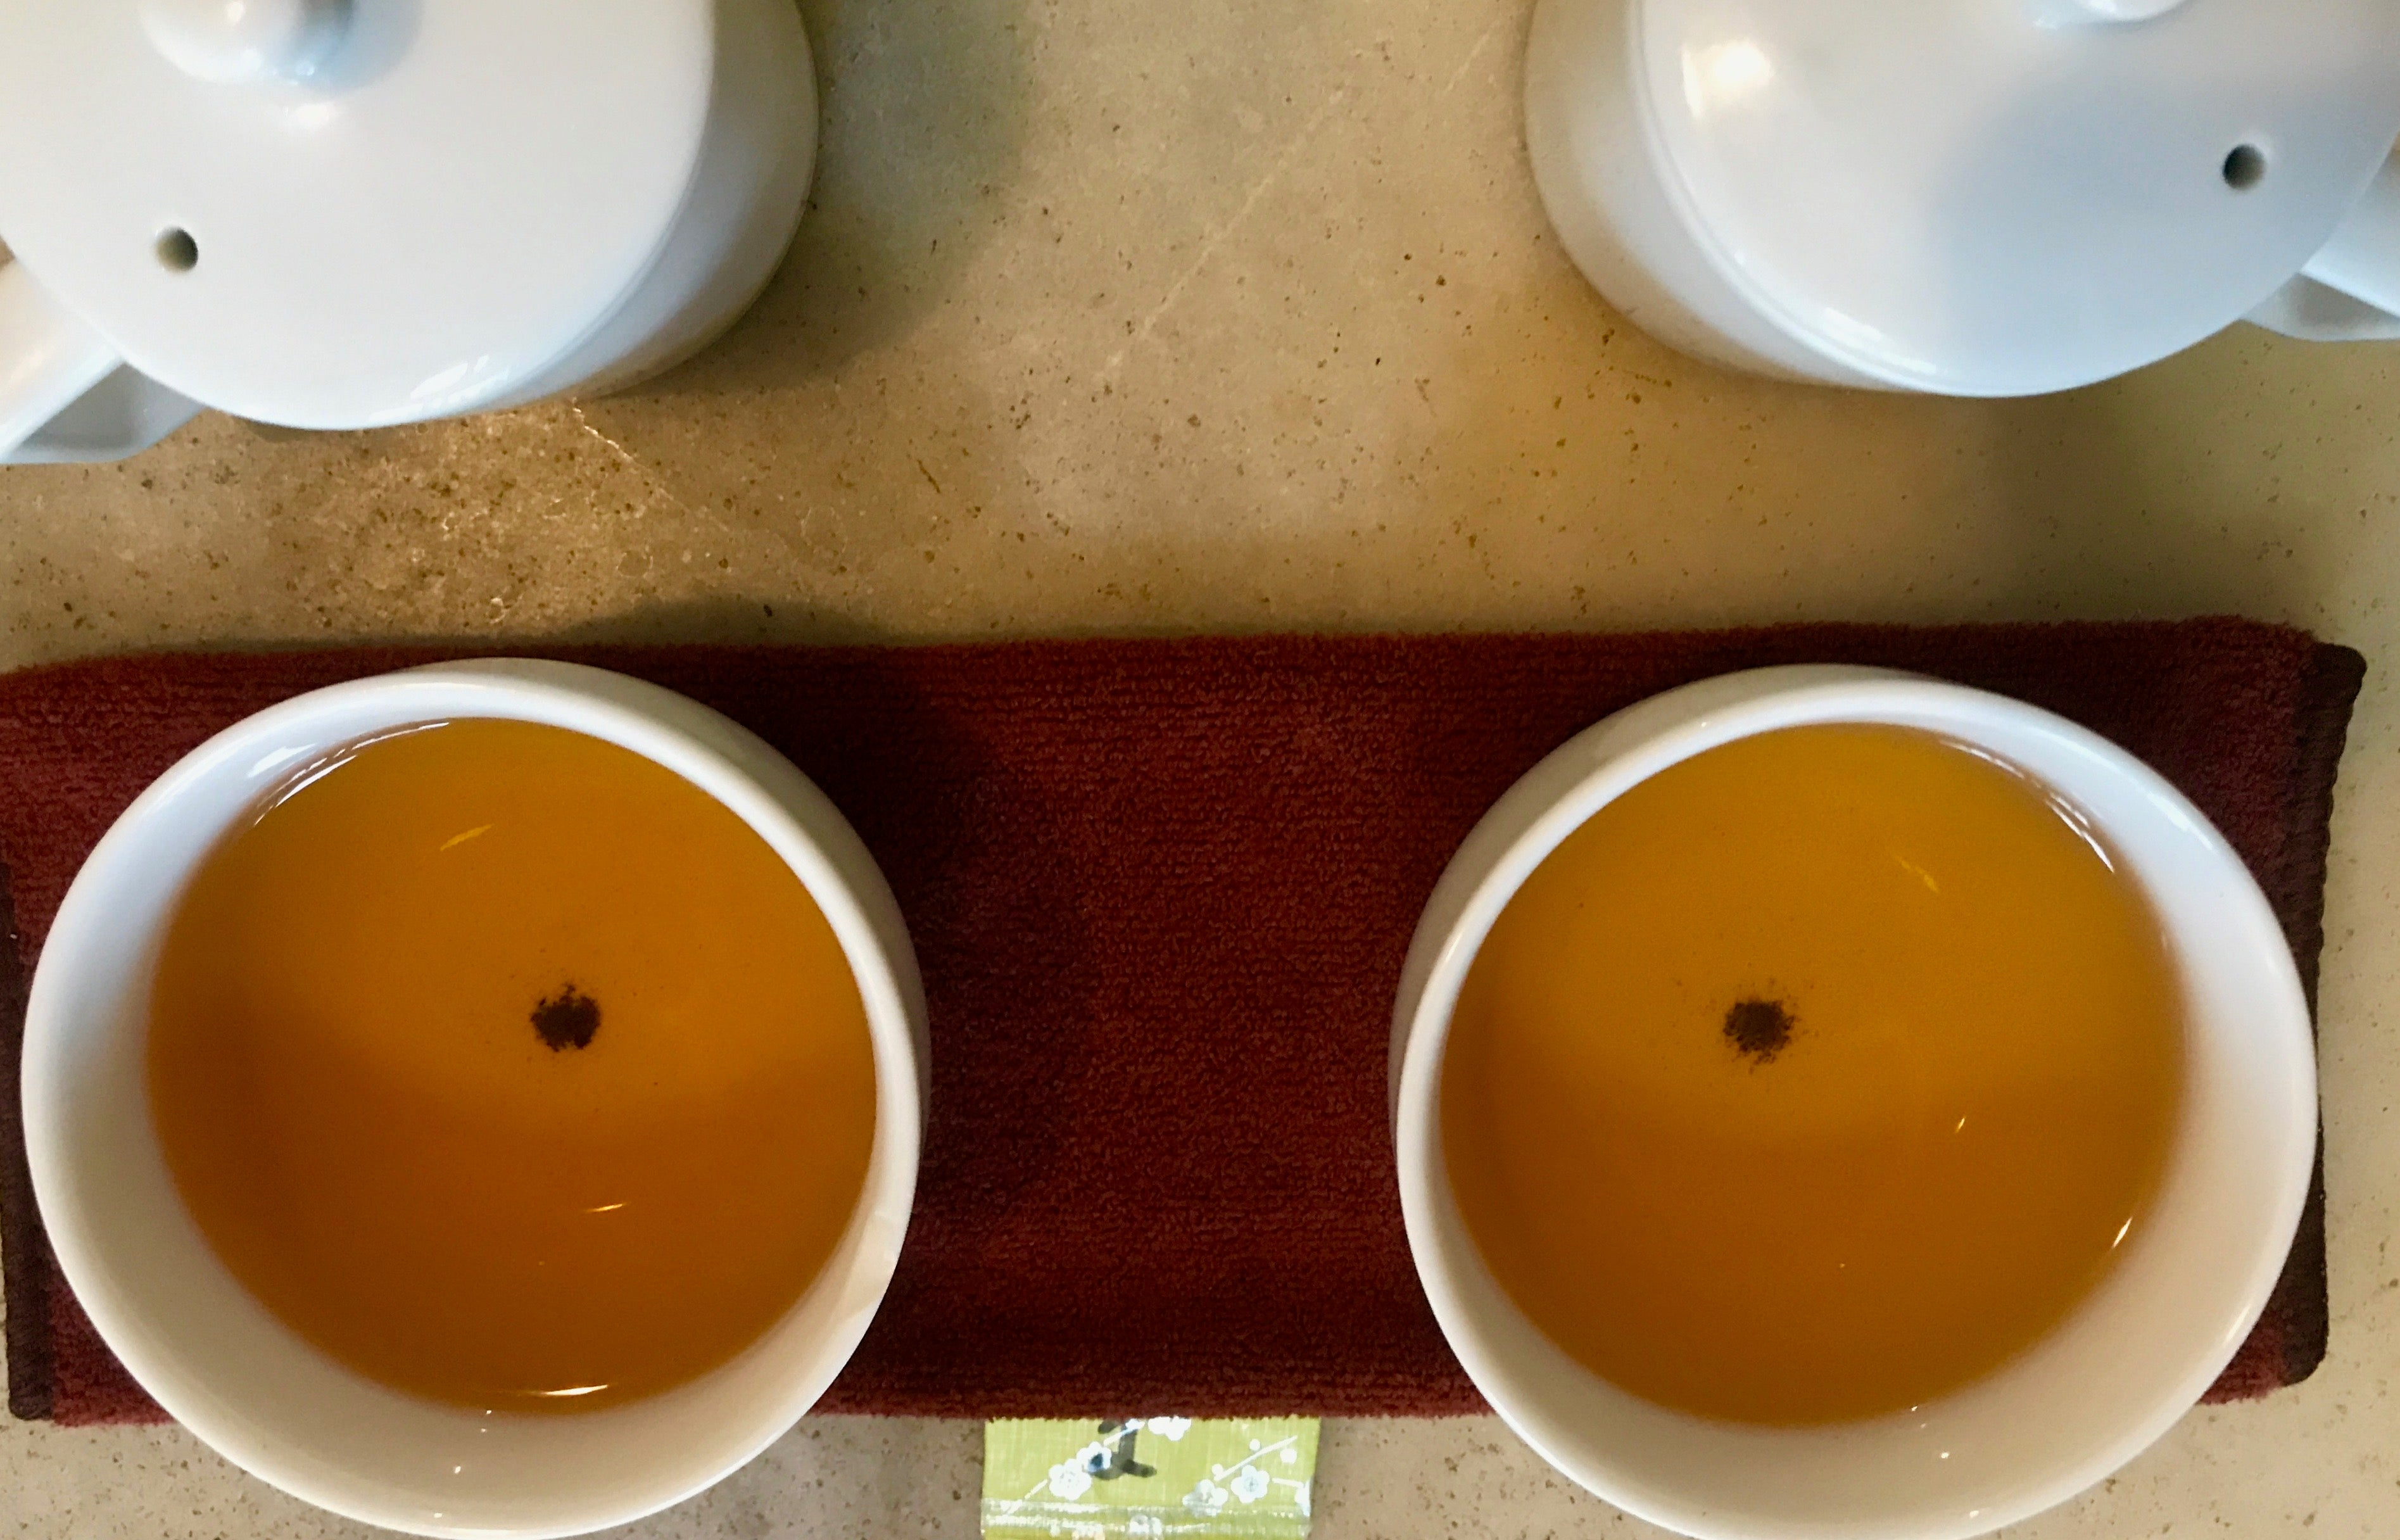 dong ding oolong tea in tea bowls